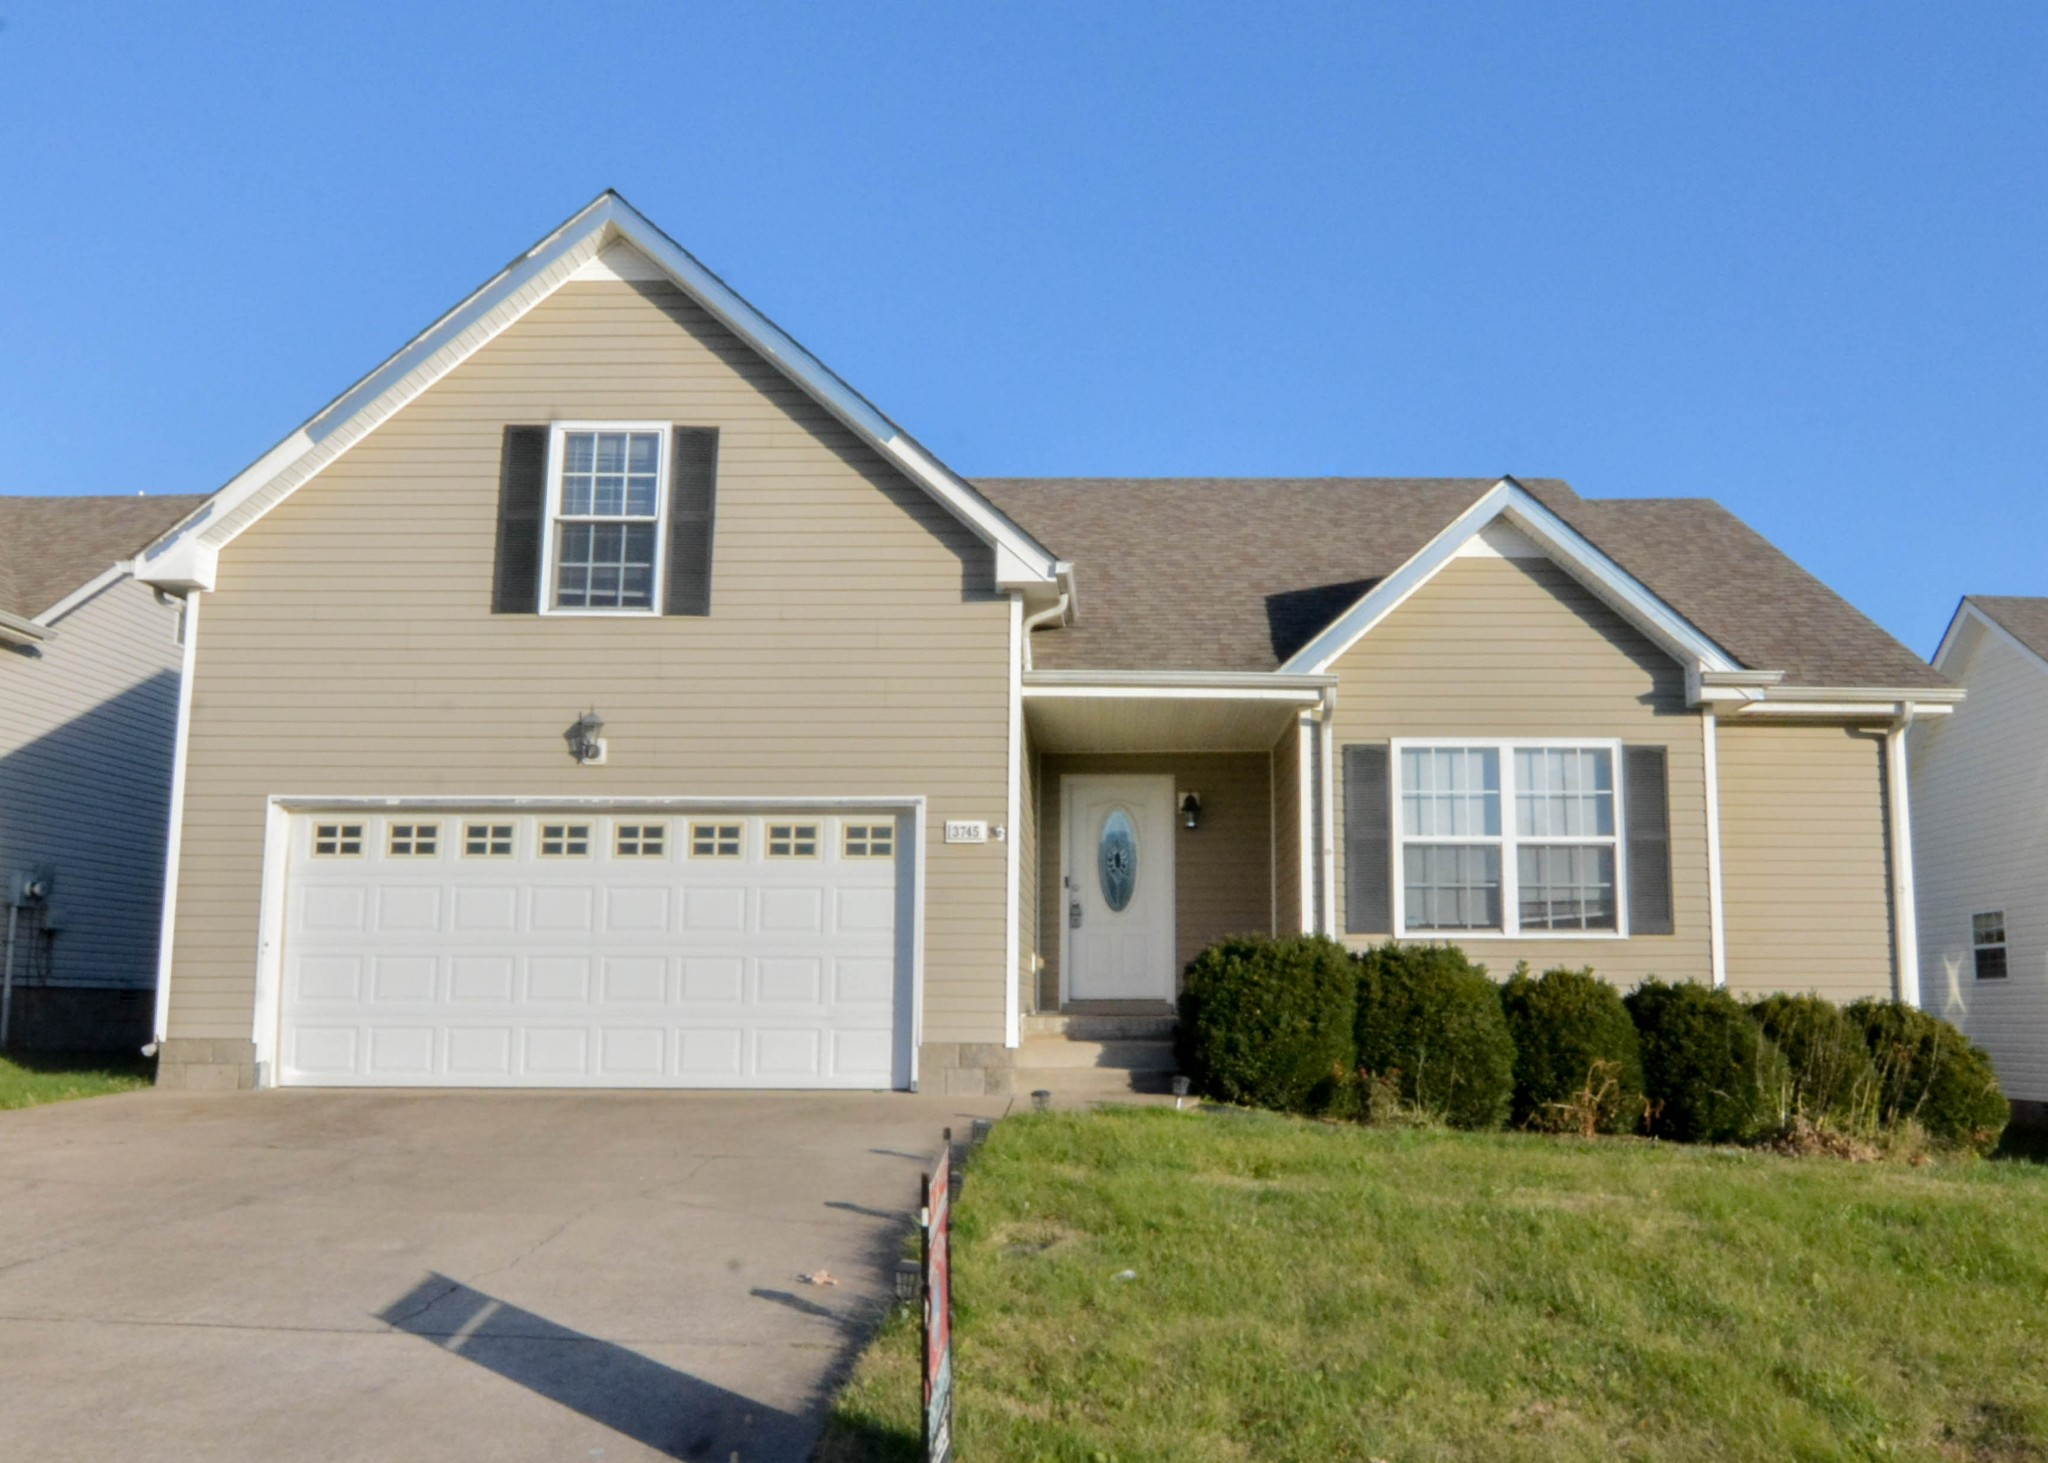 3745 N Jot Dr Property Photo - Clarksville, TN real estate listing